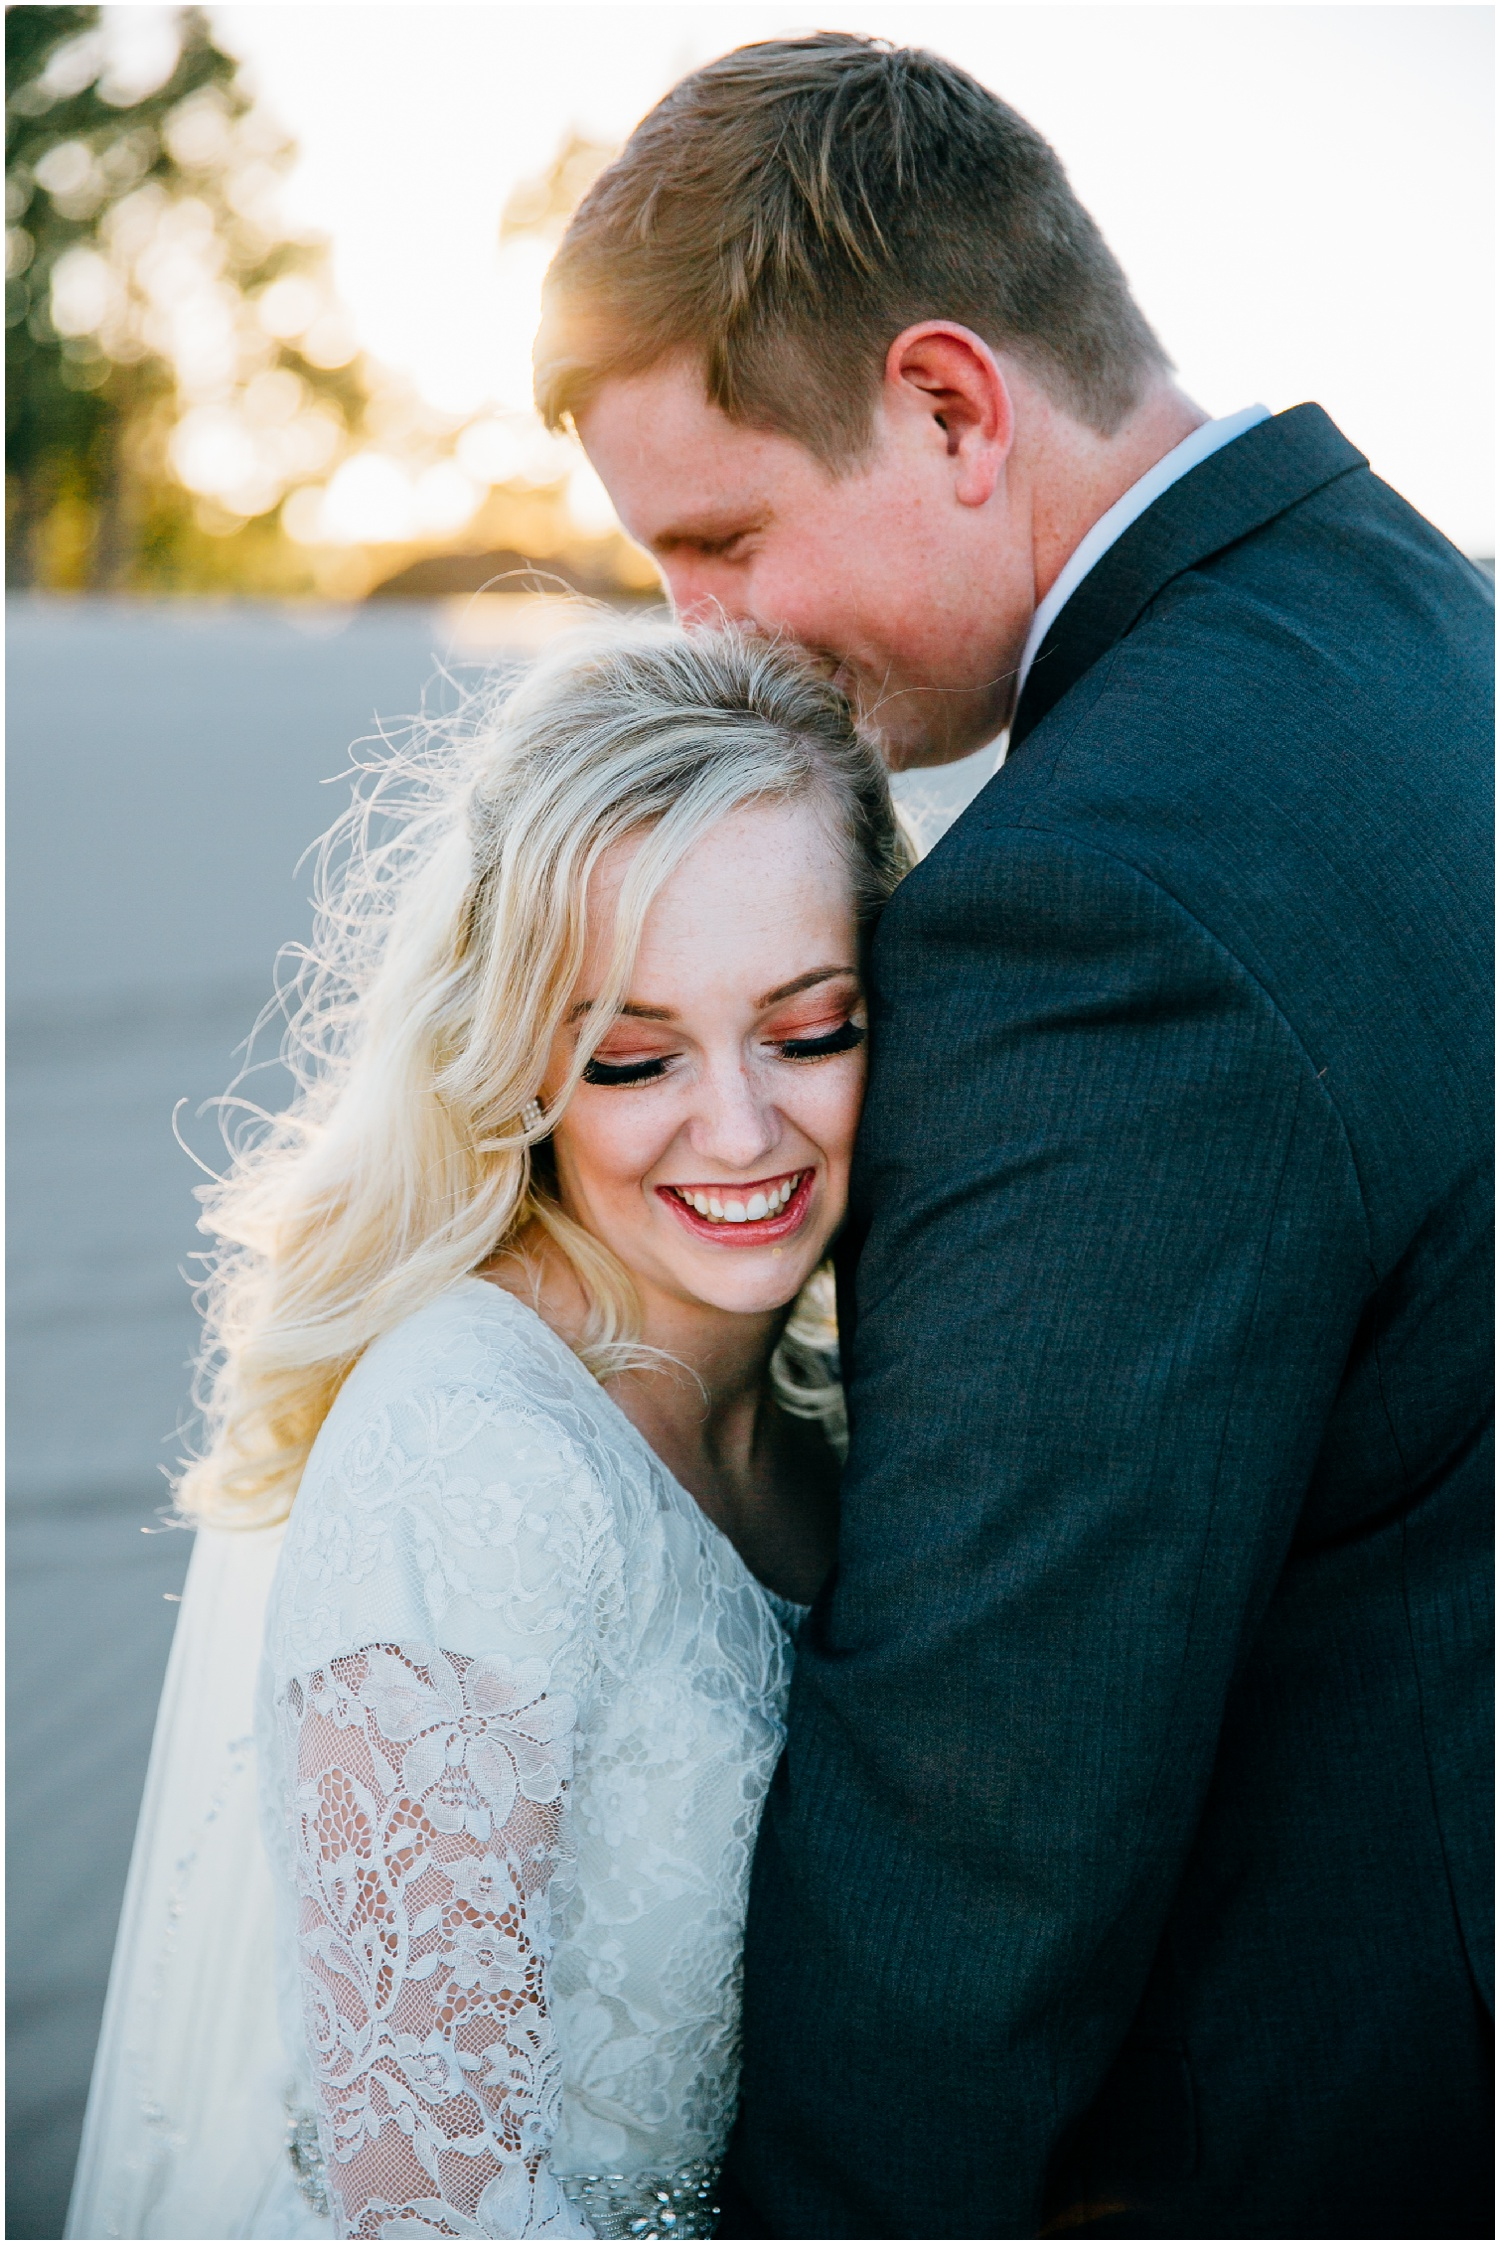 saint-anthony-sand-dunes-bridals-idaho-engagements-colorado-wyoming-wedding-photographer_0731.jpg